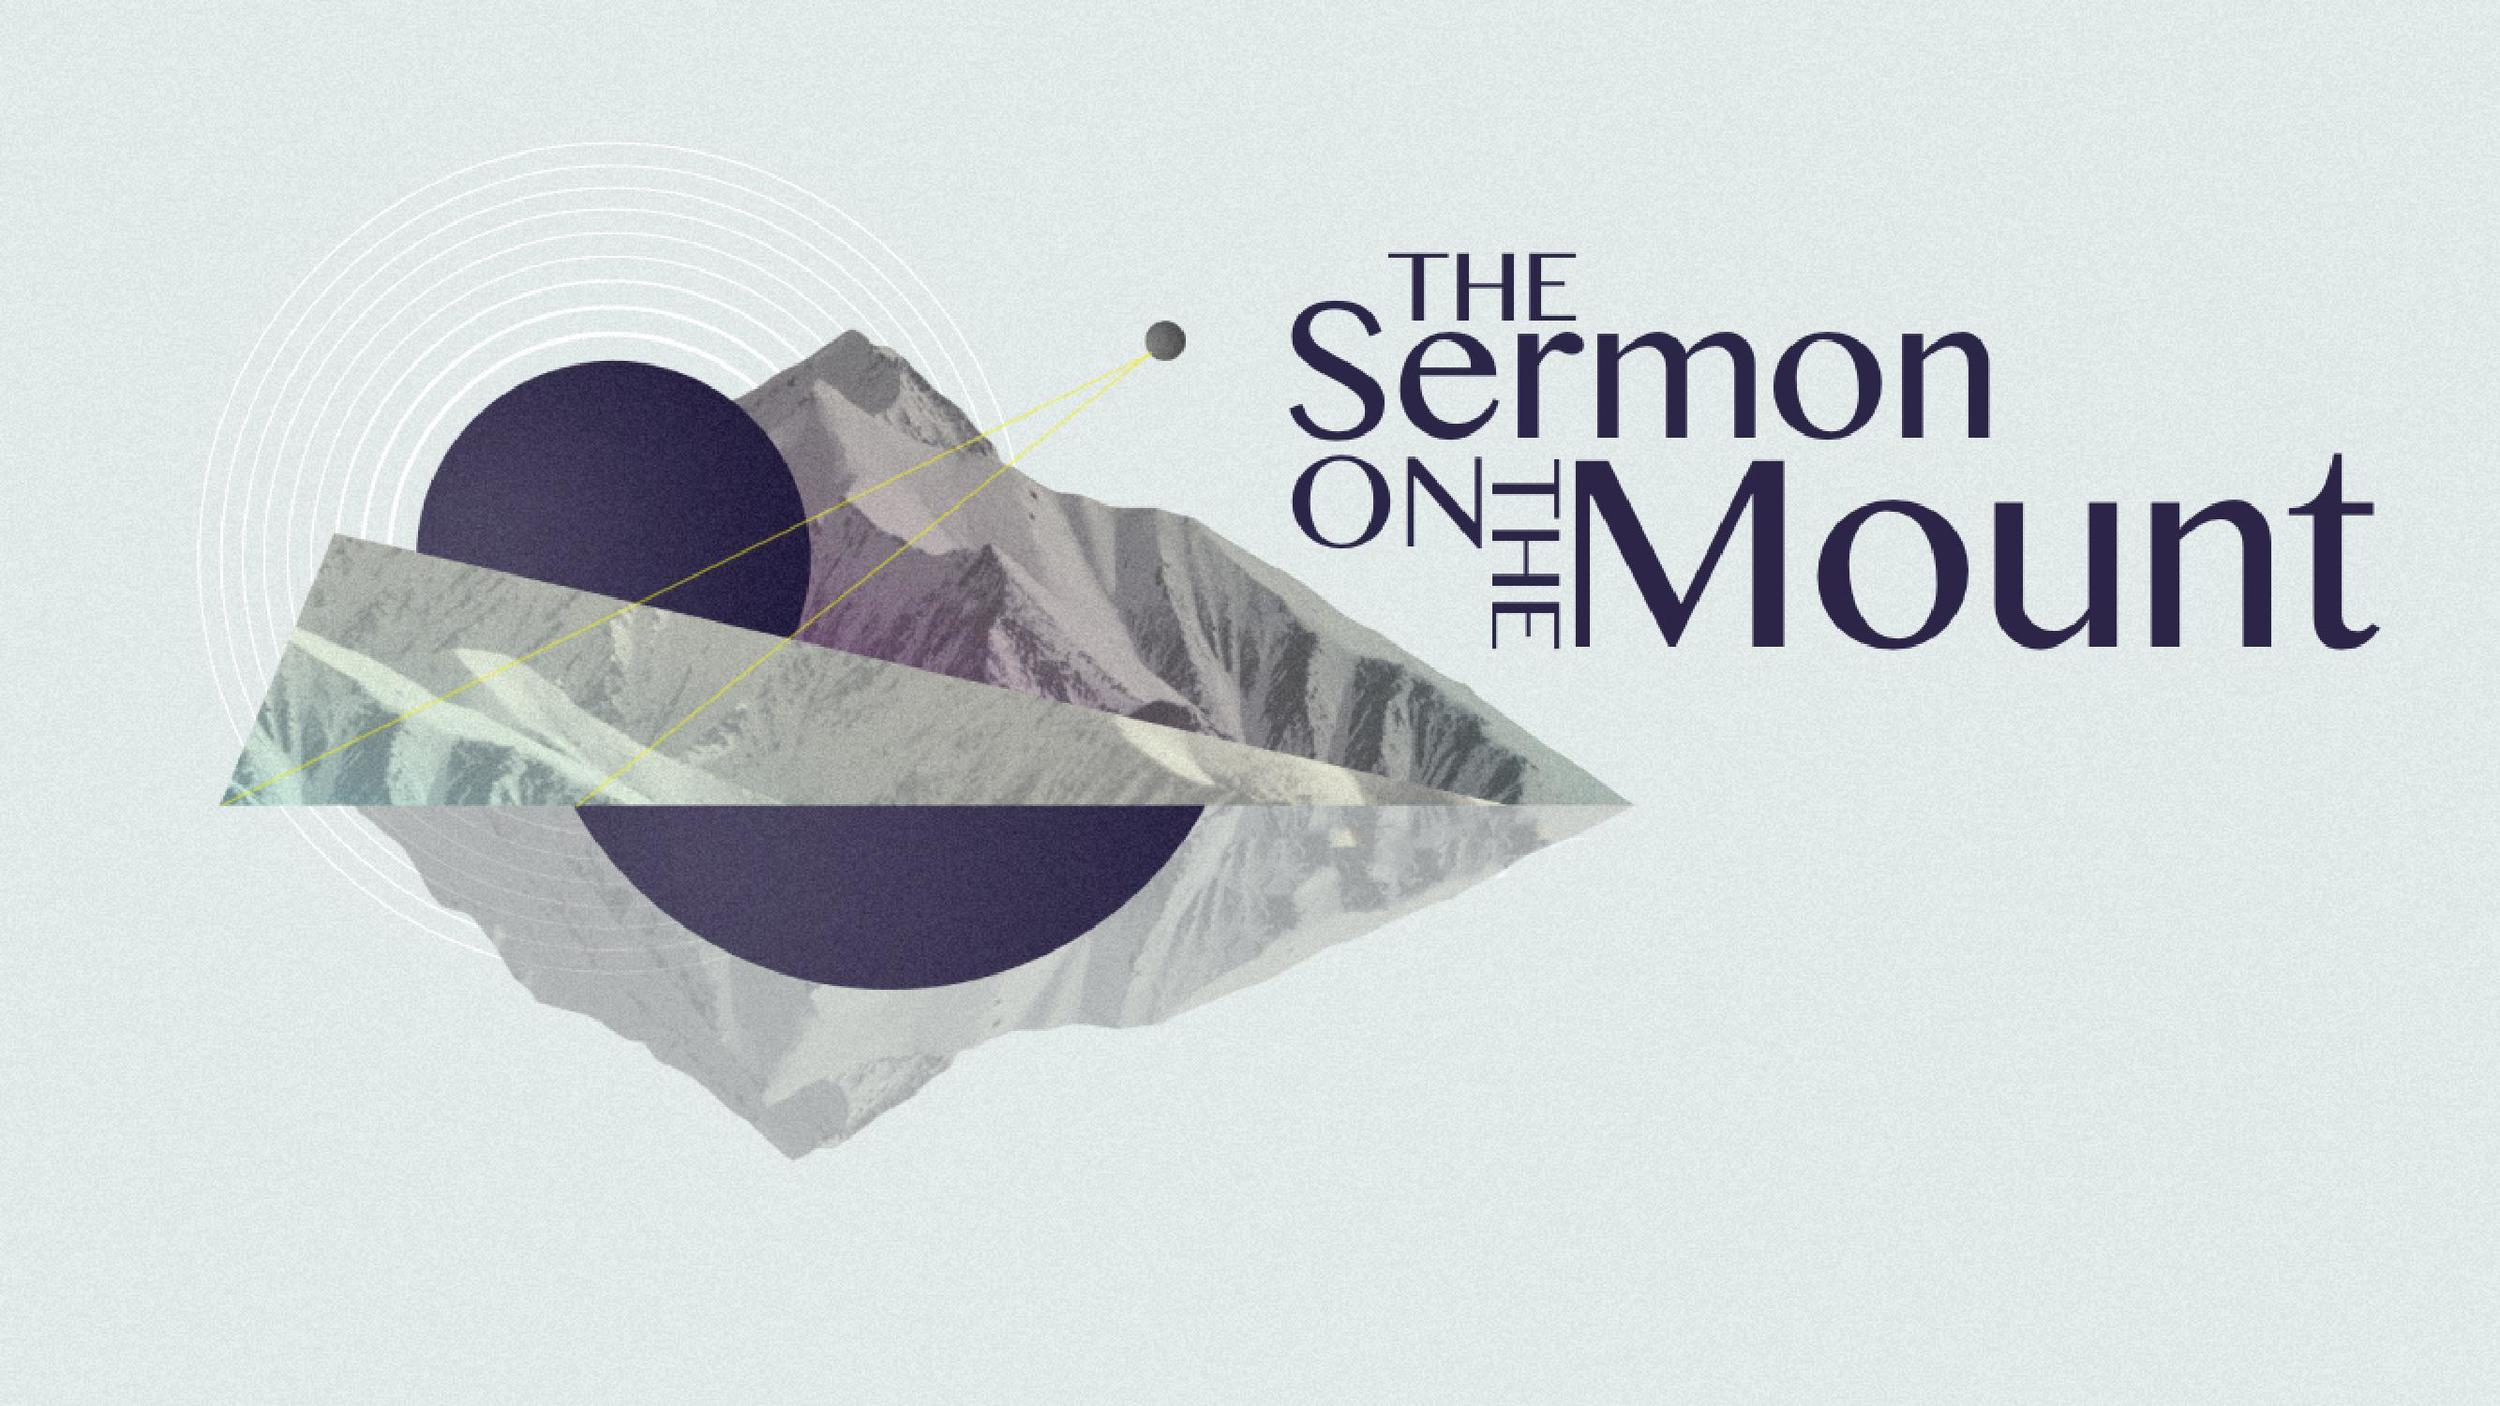 sermon on the mount graphic-page-001.jpg